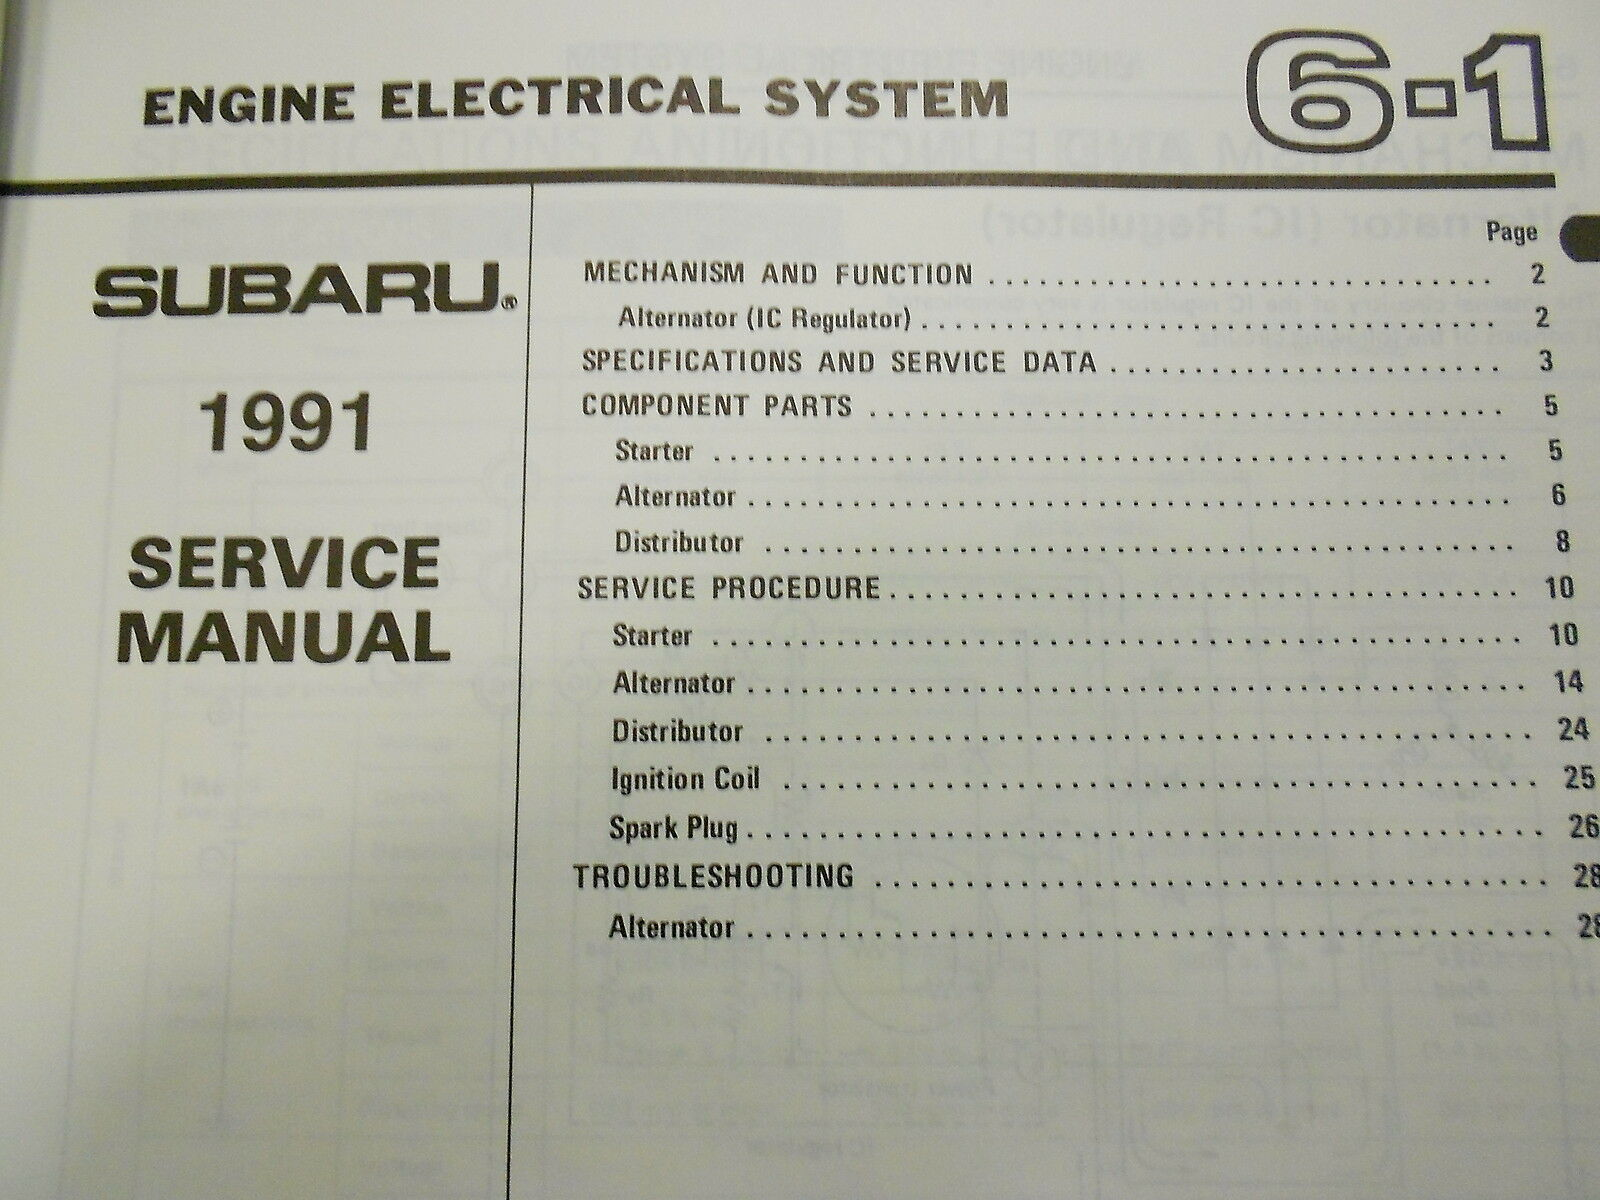 1991 Subaru XT Electrical Wiring Service Repair Shop Manual FACTORY FEO BOOK 91